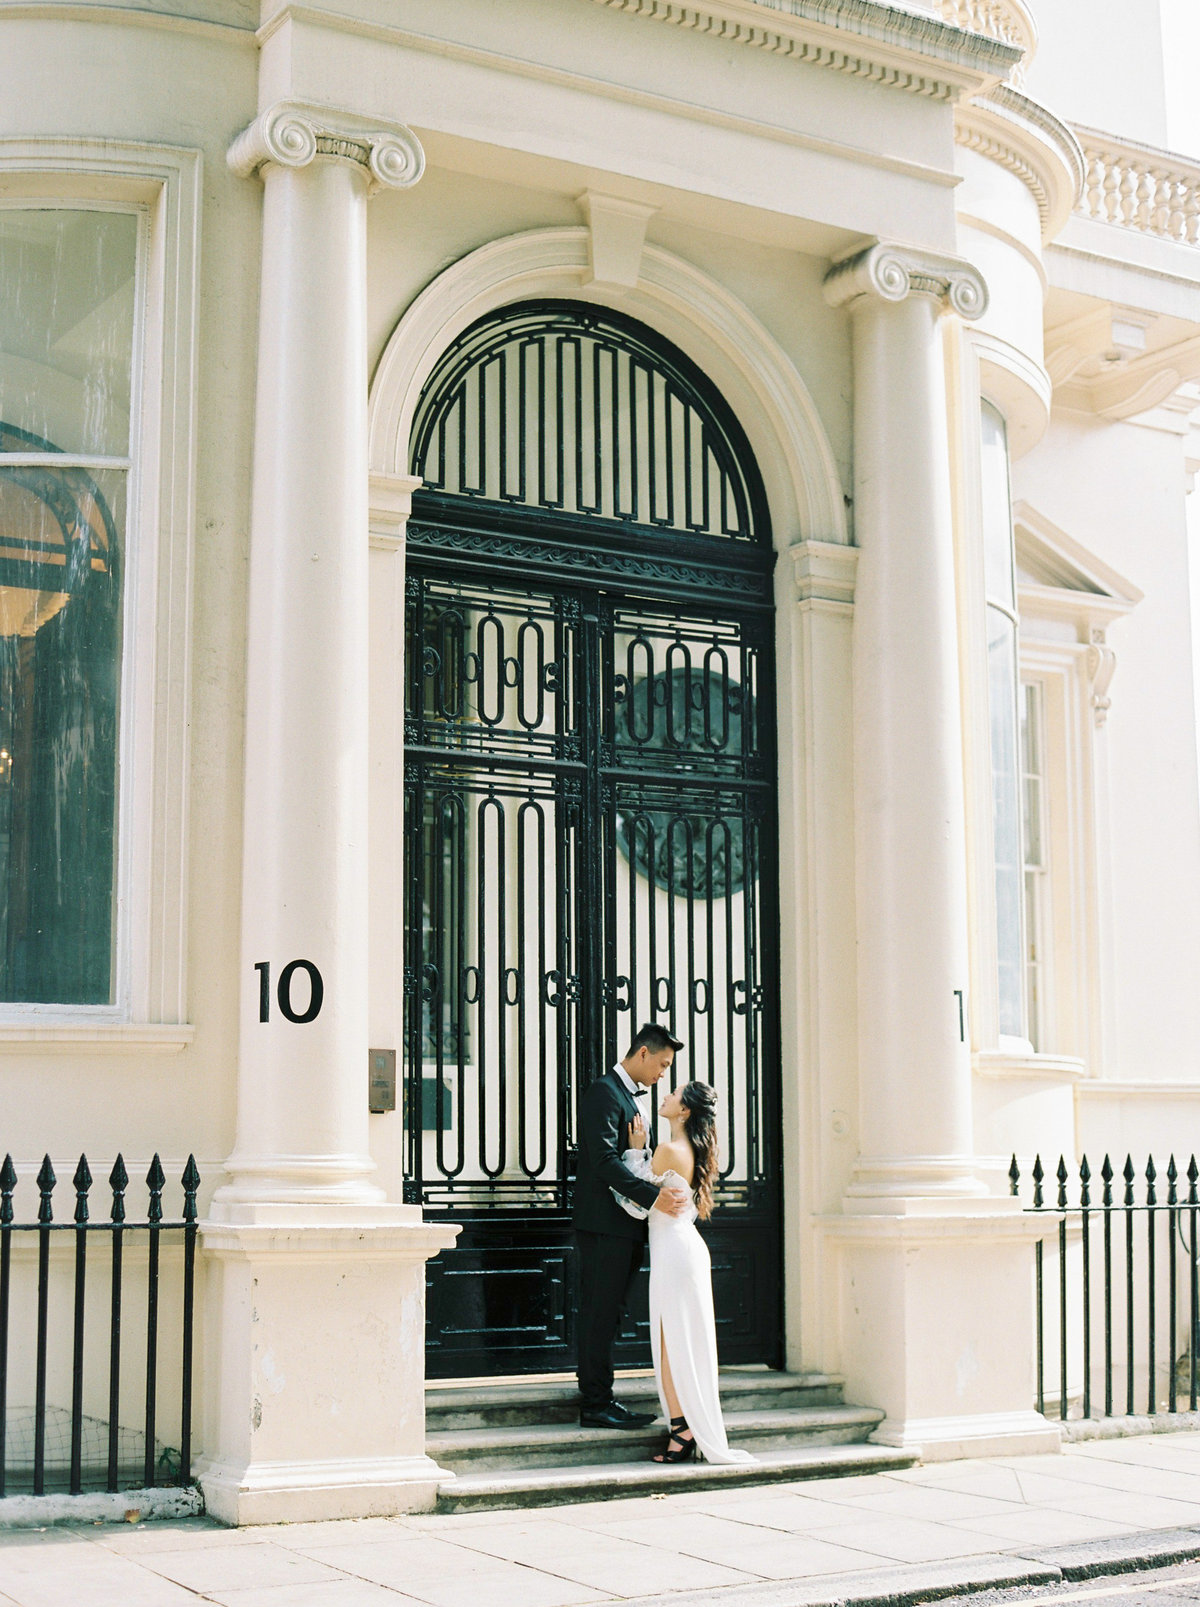 Terry-Li-Photography-London-Styled-Shoot-52